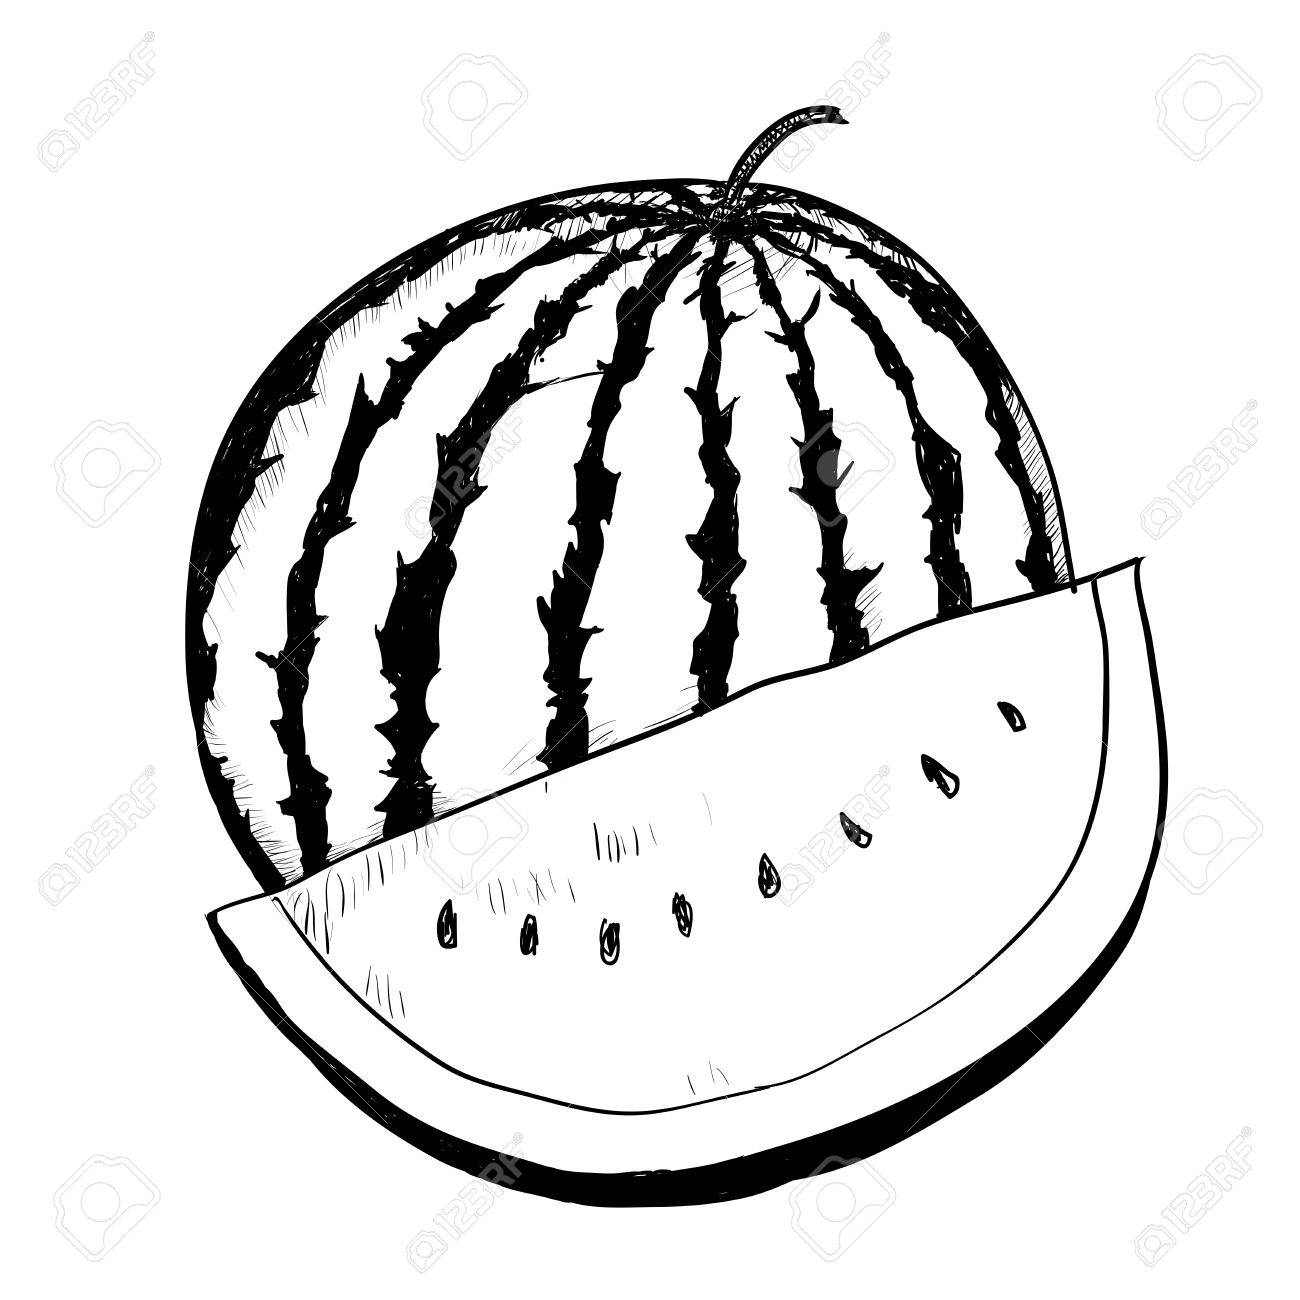 Black And White Clipart Watermelon.